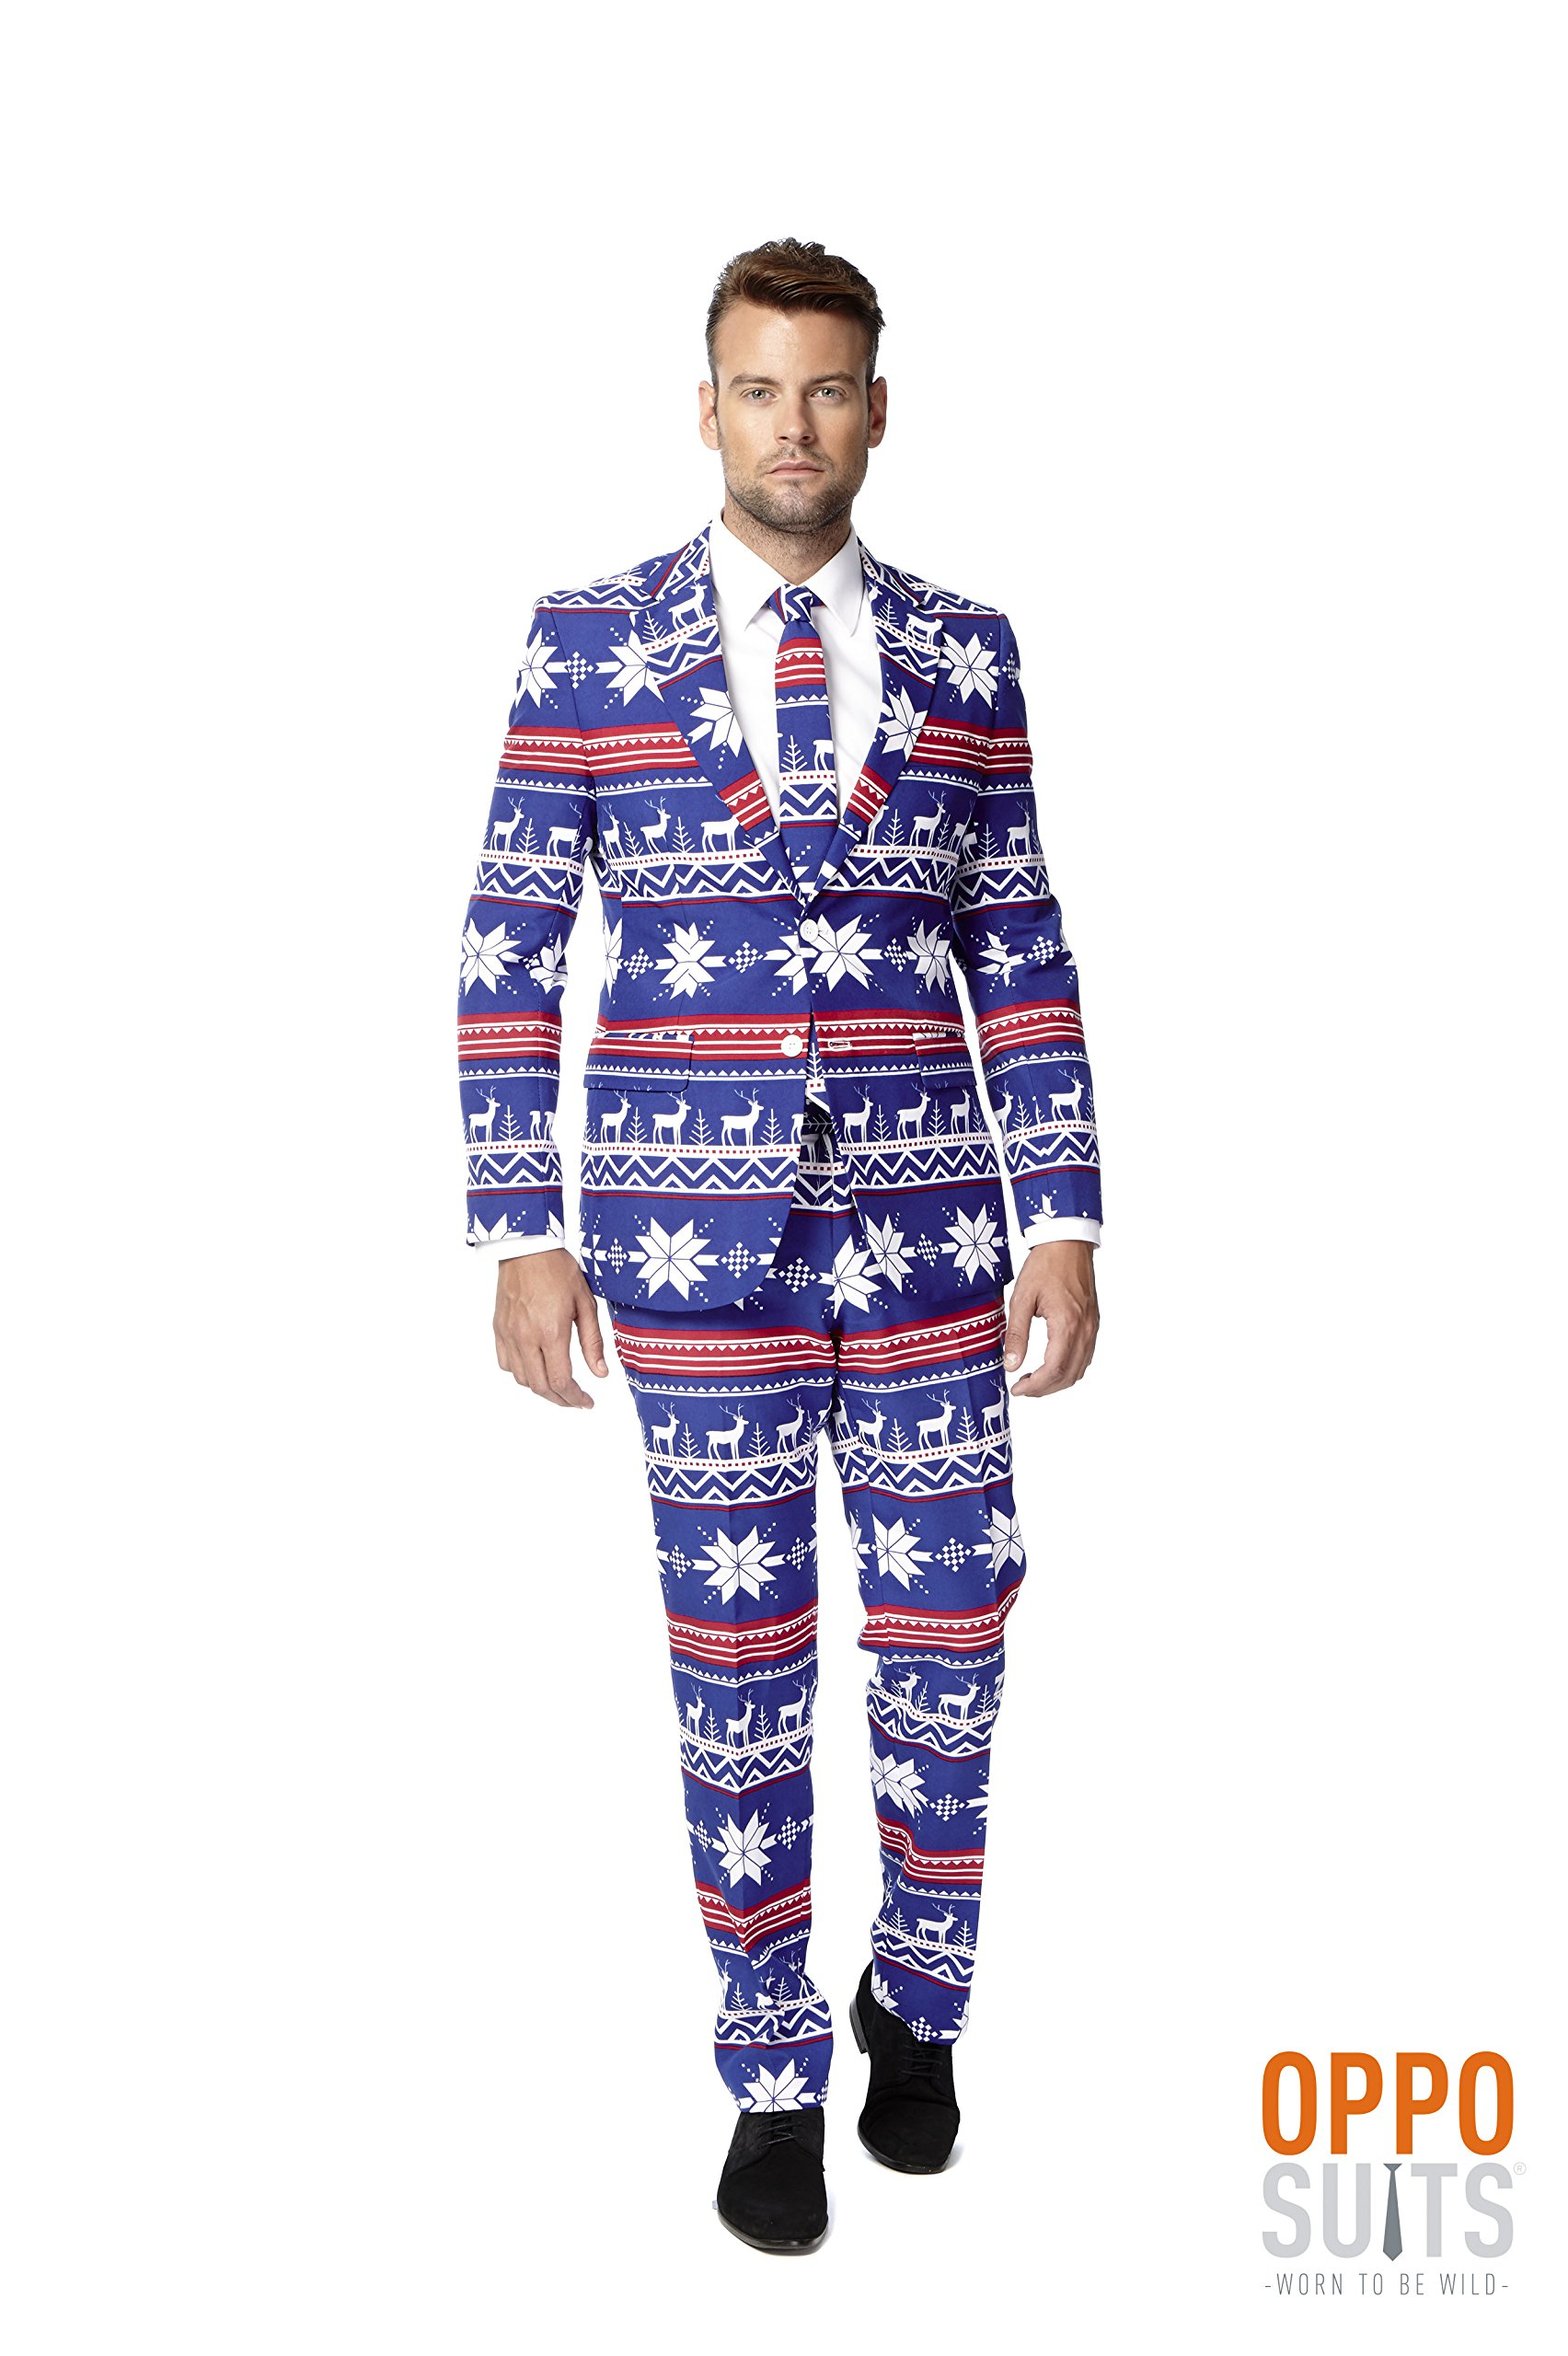 OppoSuits Men's The Rudolpoh Party Costume Suit, Blue/White/Red, 50 by Opposuits